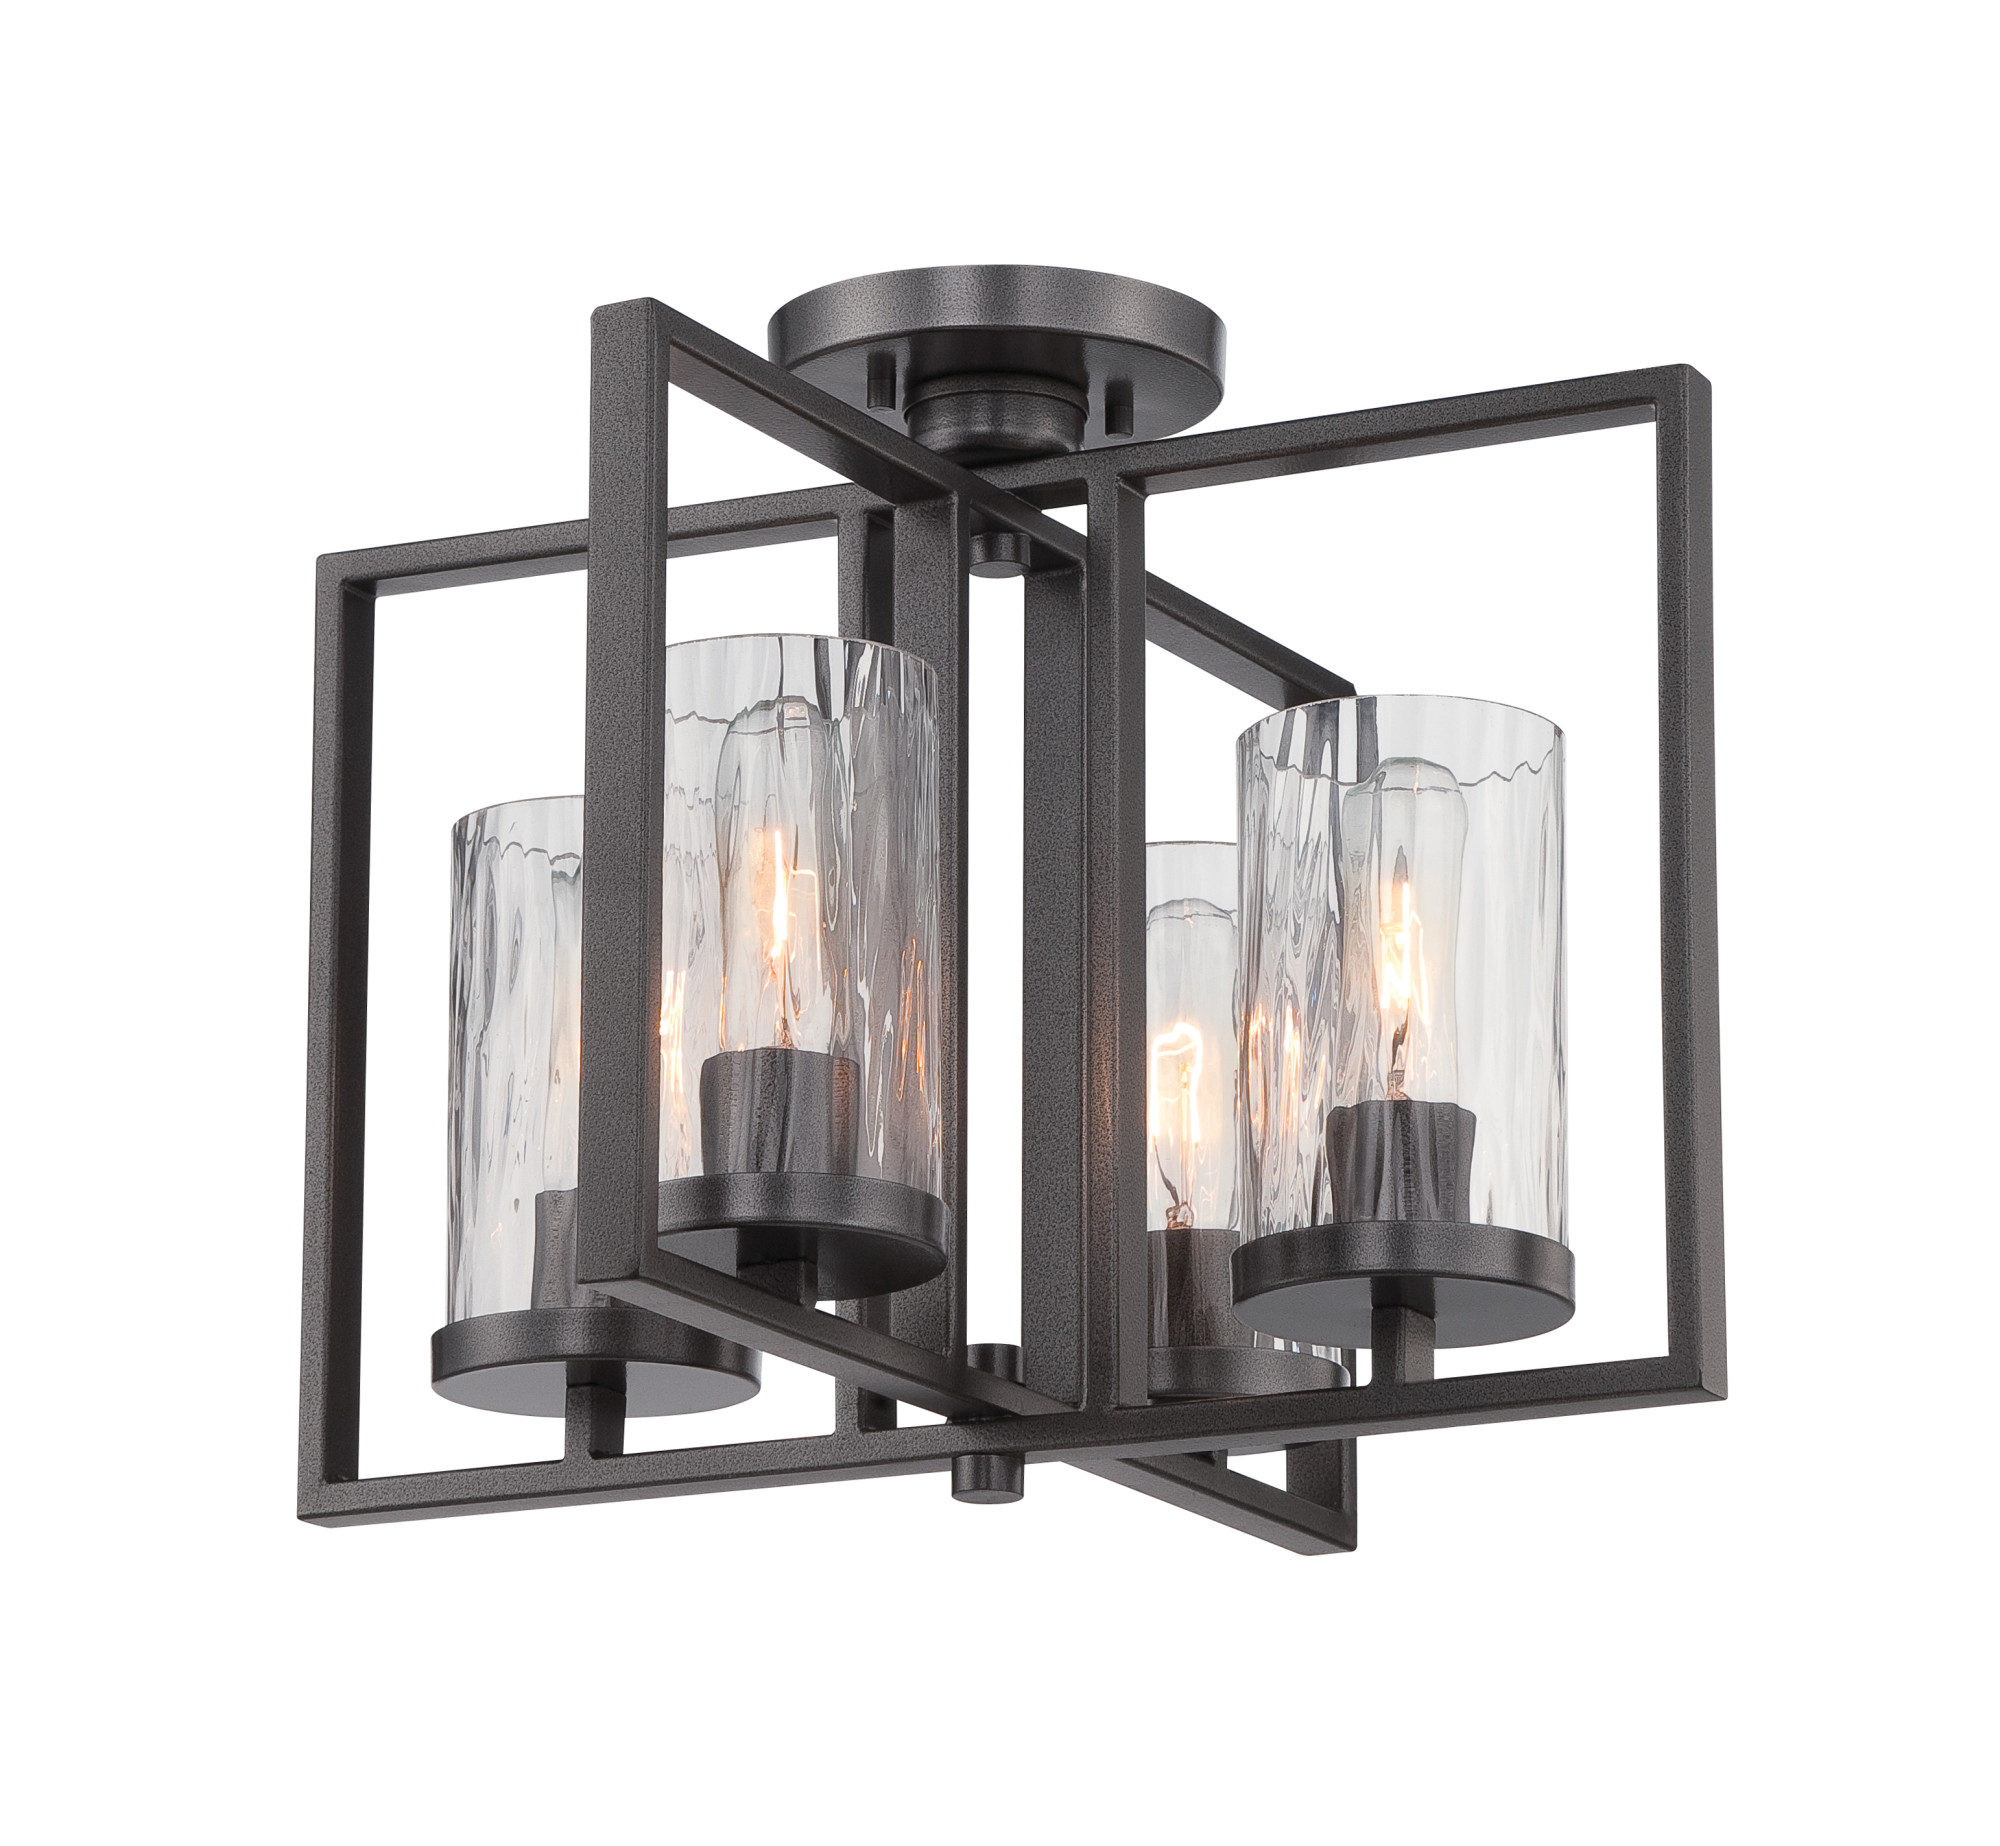 Designers Fountain Lighting Details About Designers Fountain 86511 Cha Elements 4 Light Semi Flush Ceiling Fixture